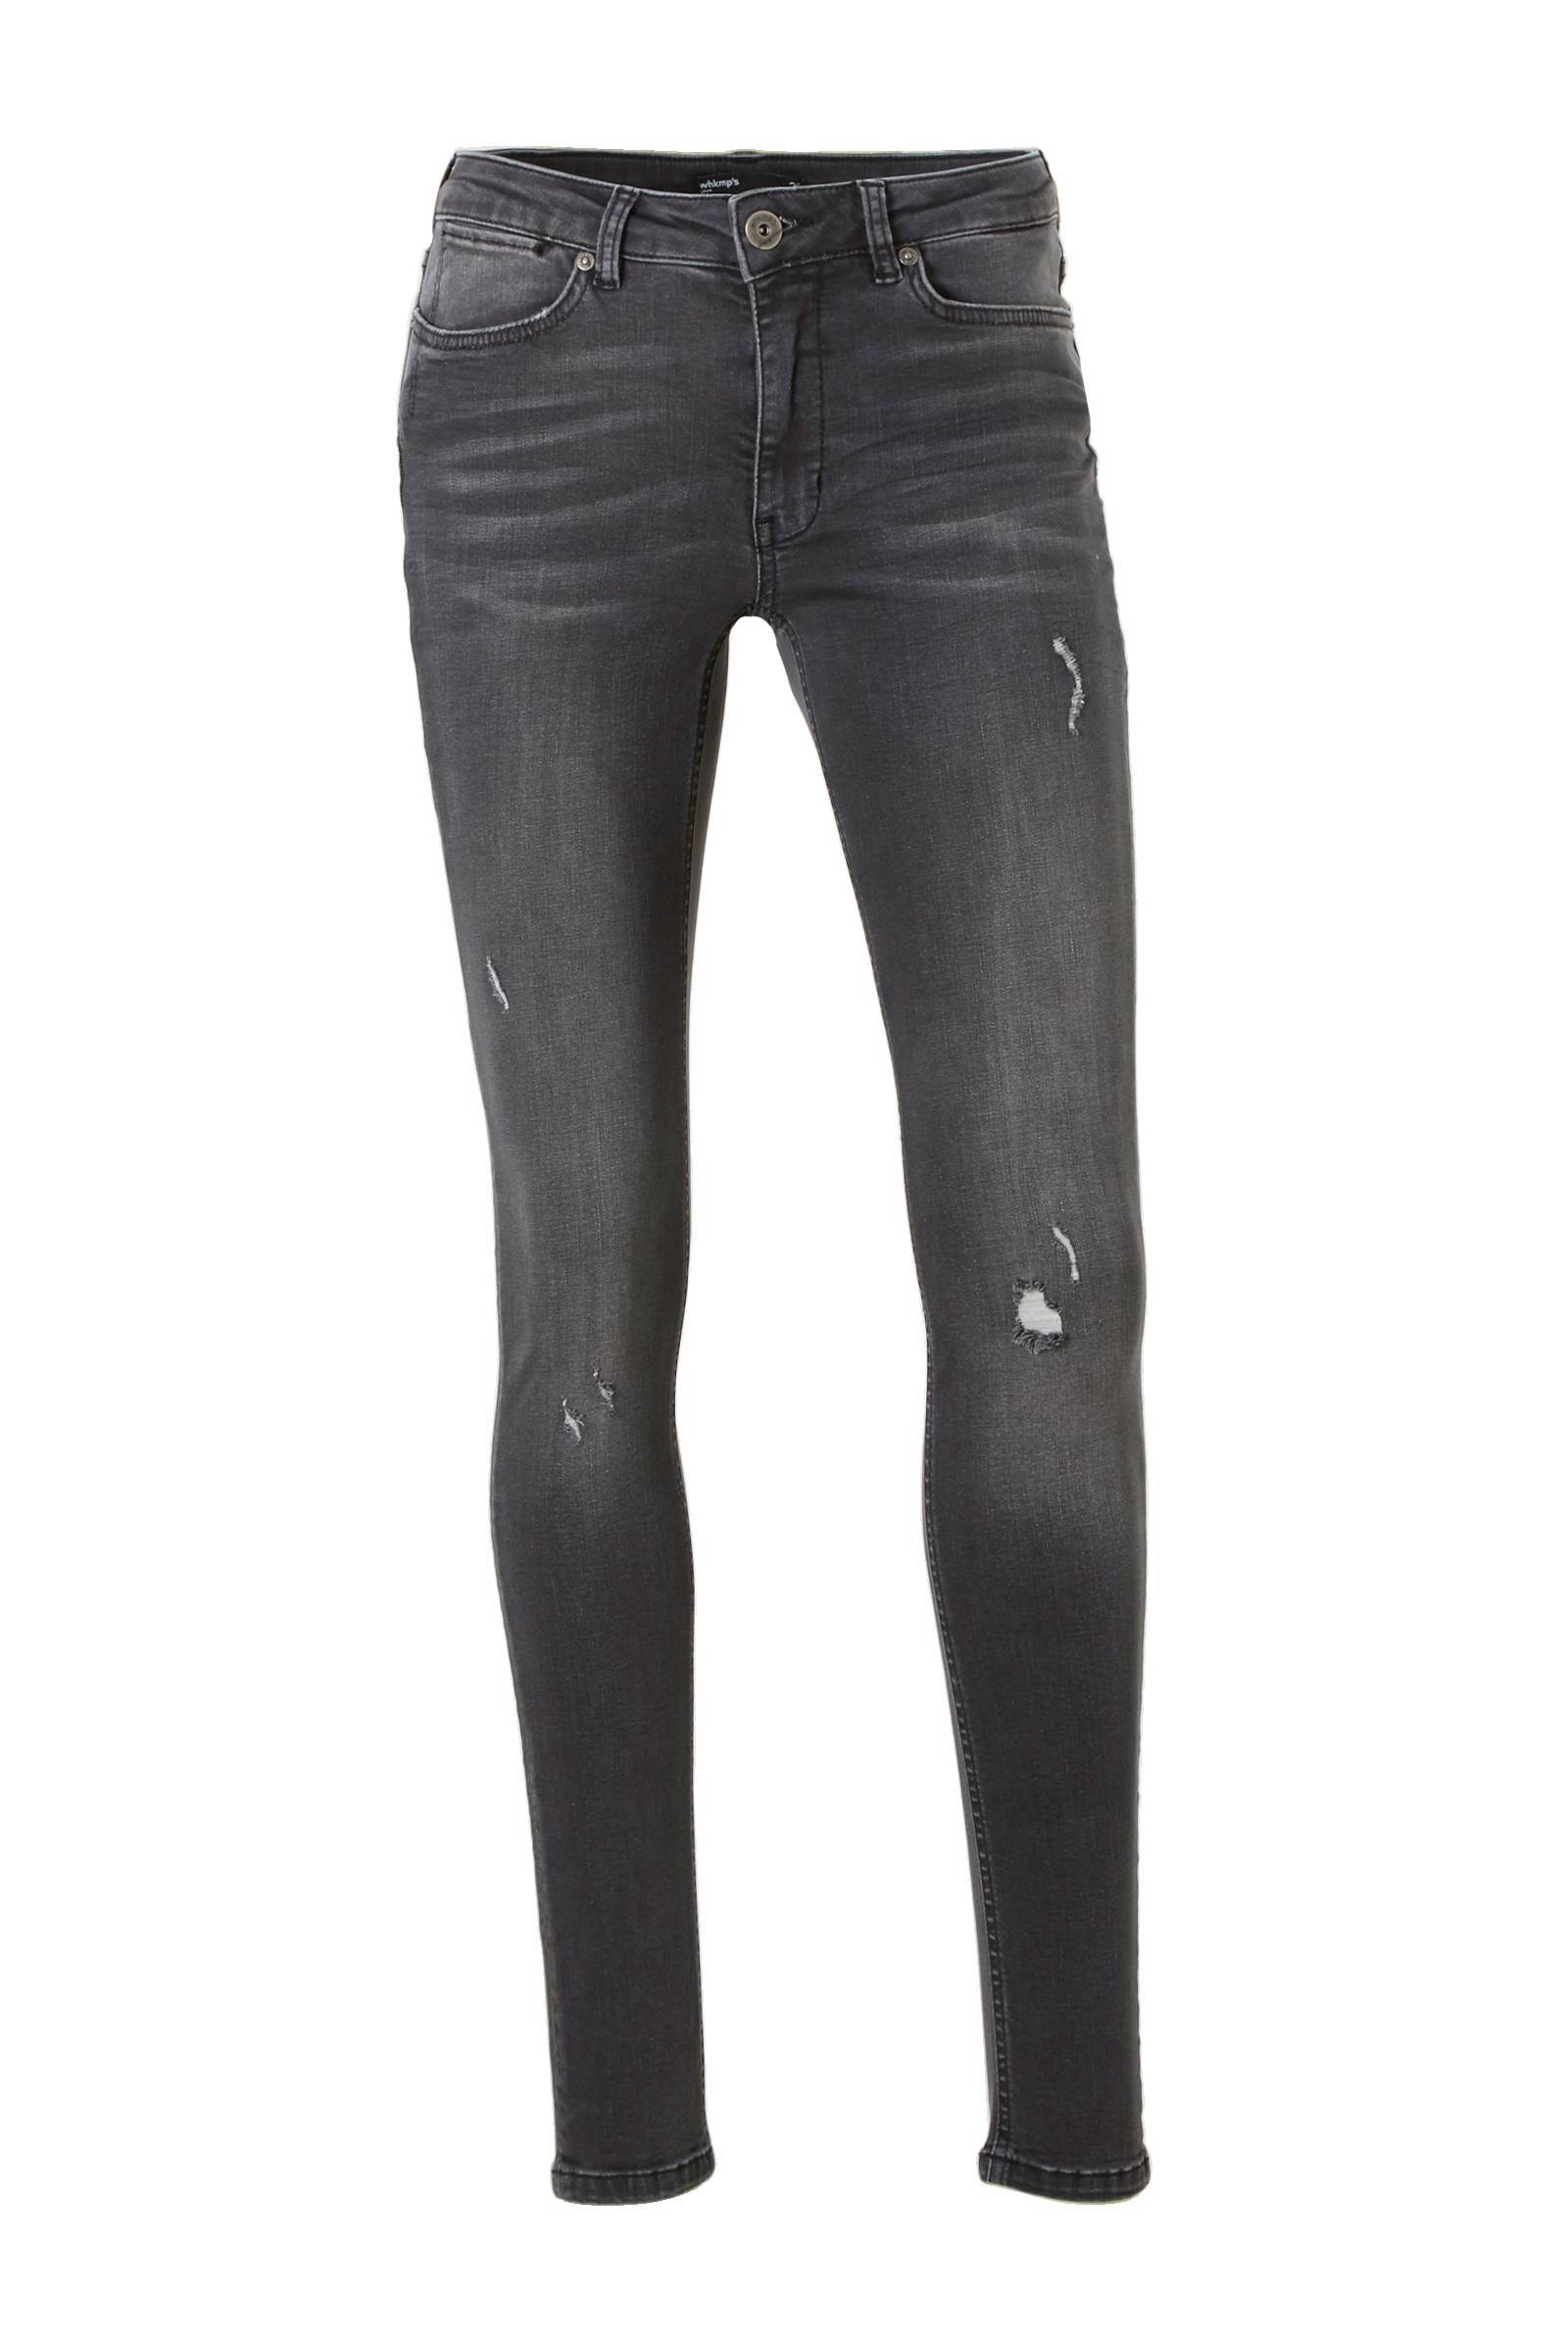 whkmp's own super comfort skinny denim met destroy (dames)